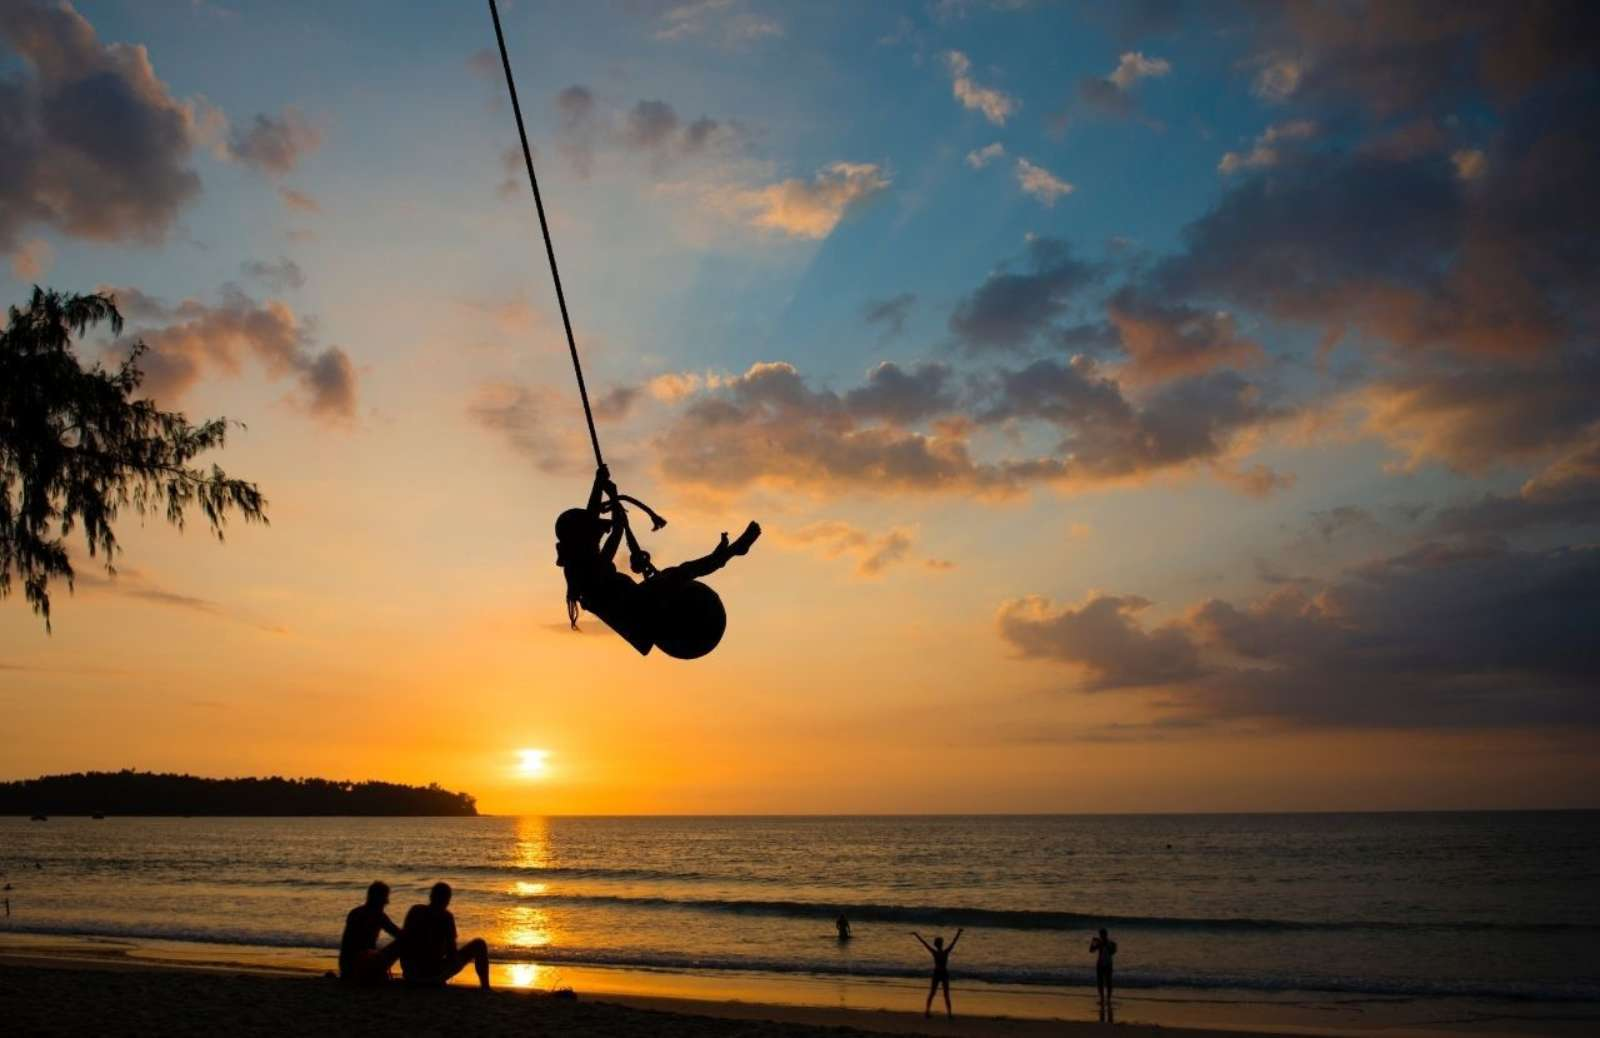 A summer sun sets over a body of water. Silhouettes of a family, lounging, playing and swinging on a rope are on the shoreline.